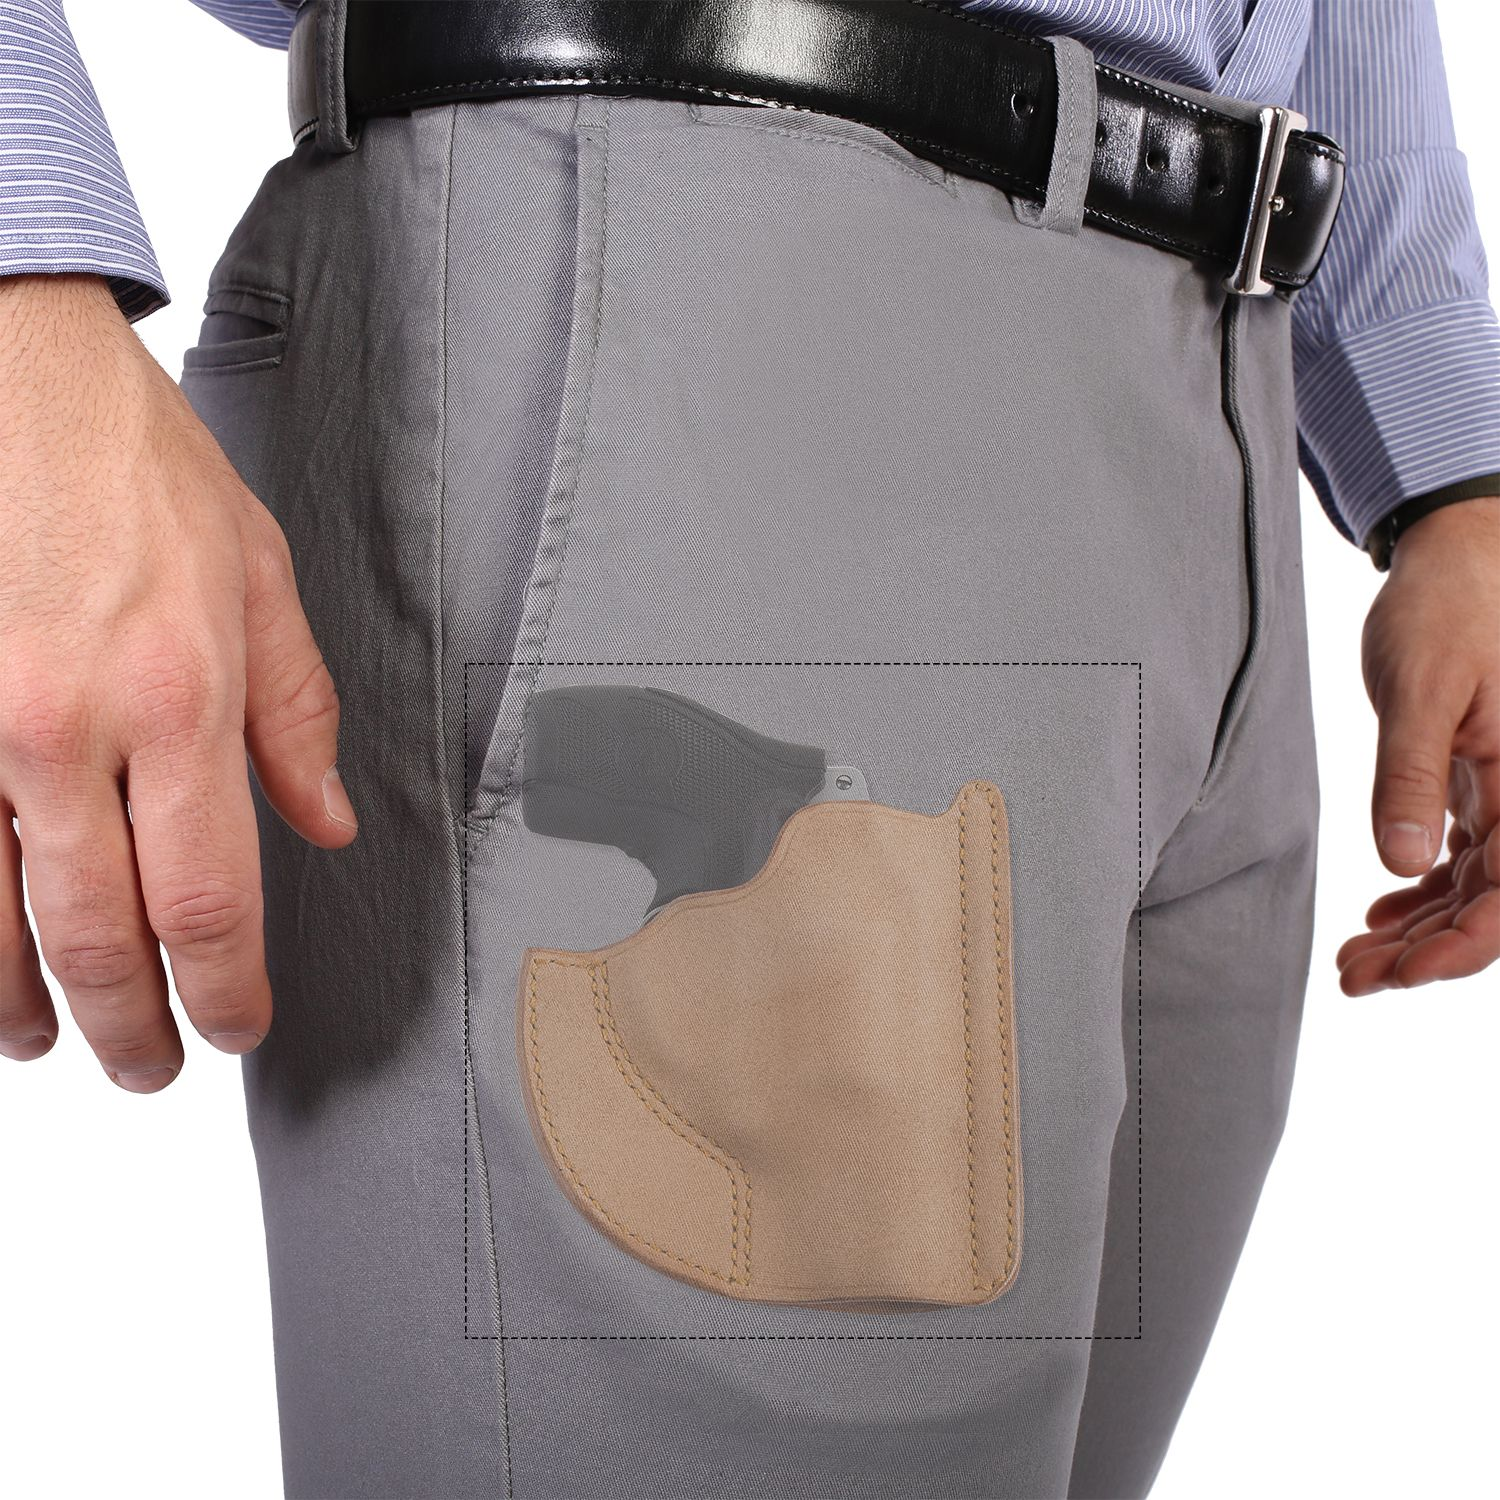 FRONT POCKET HORSEHIDE HOLSTER: While limiting the carrier